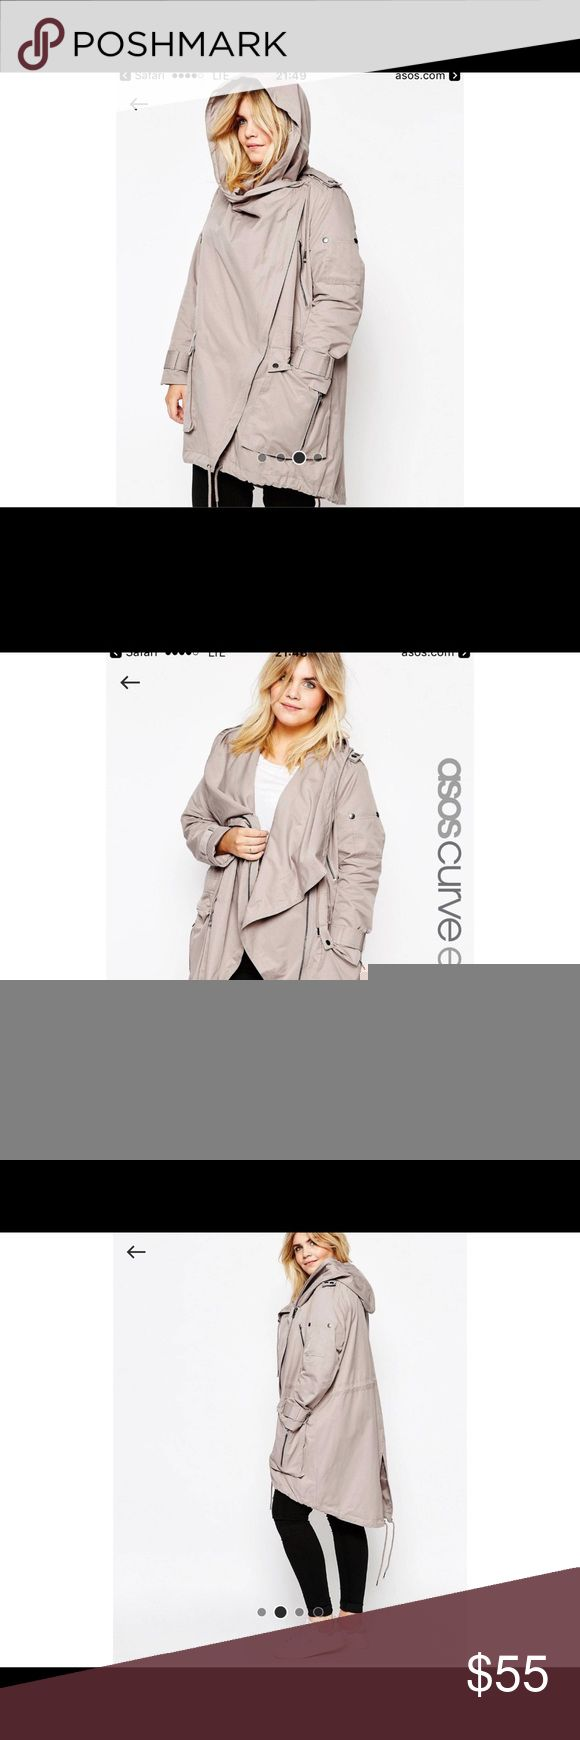 ASOS CURVE Parka with Waterfall and Storm Flap NWOT, I took the tag off before I tried it on lol ASOS Curve Jackets & Coats Capes